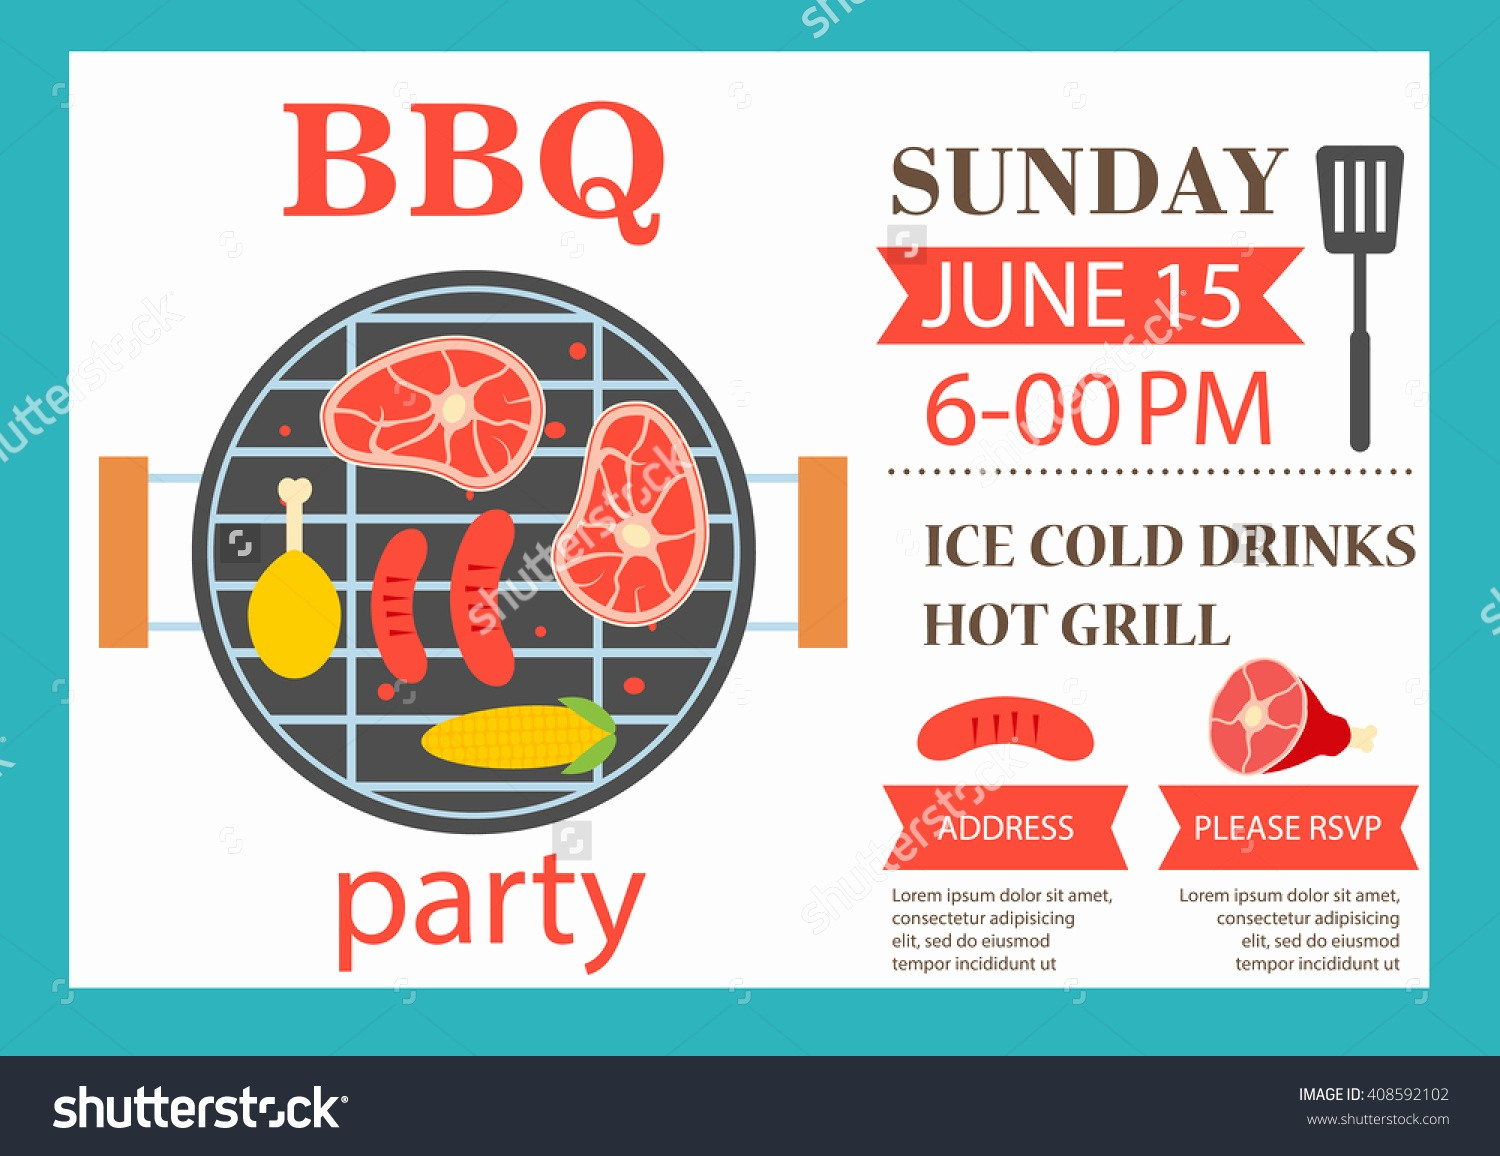 Bbq Party Invitation Templates Free Inspirational Party Invitation Flyer